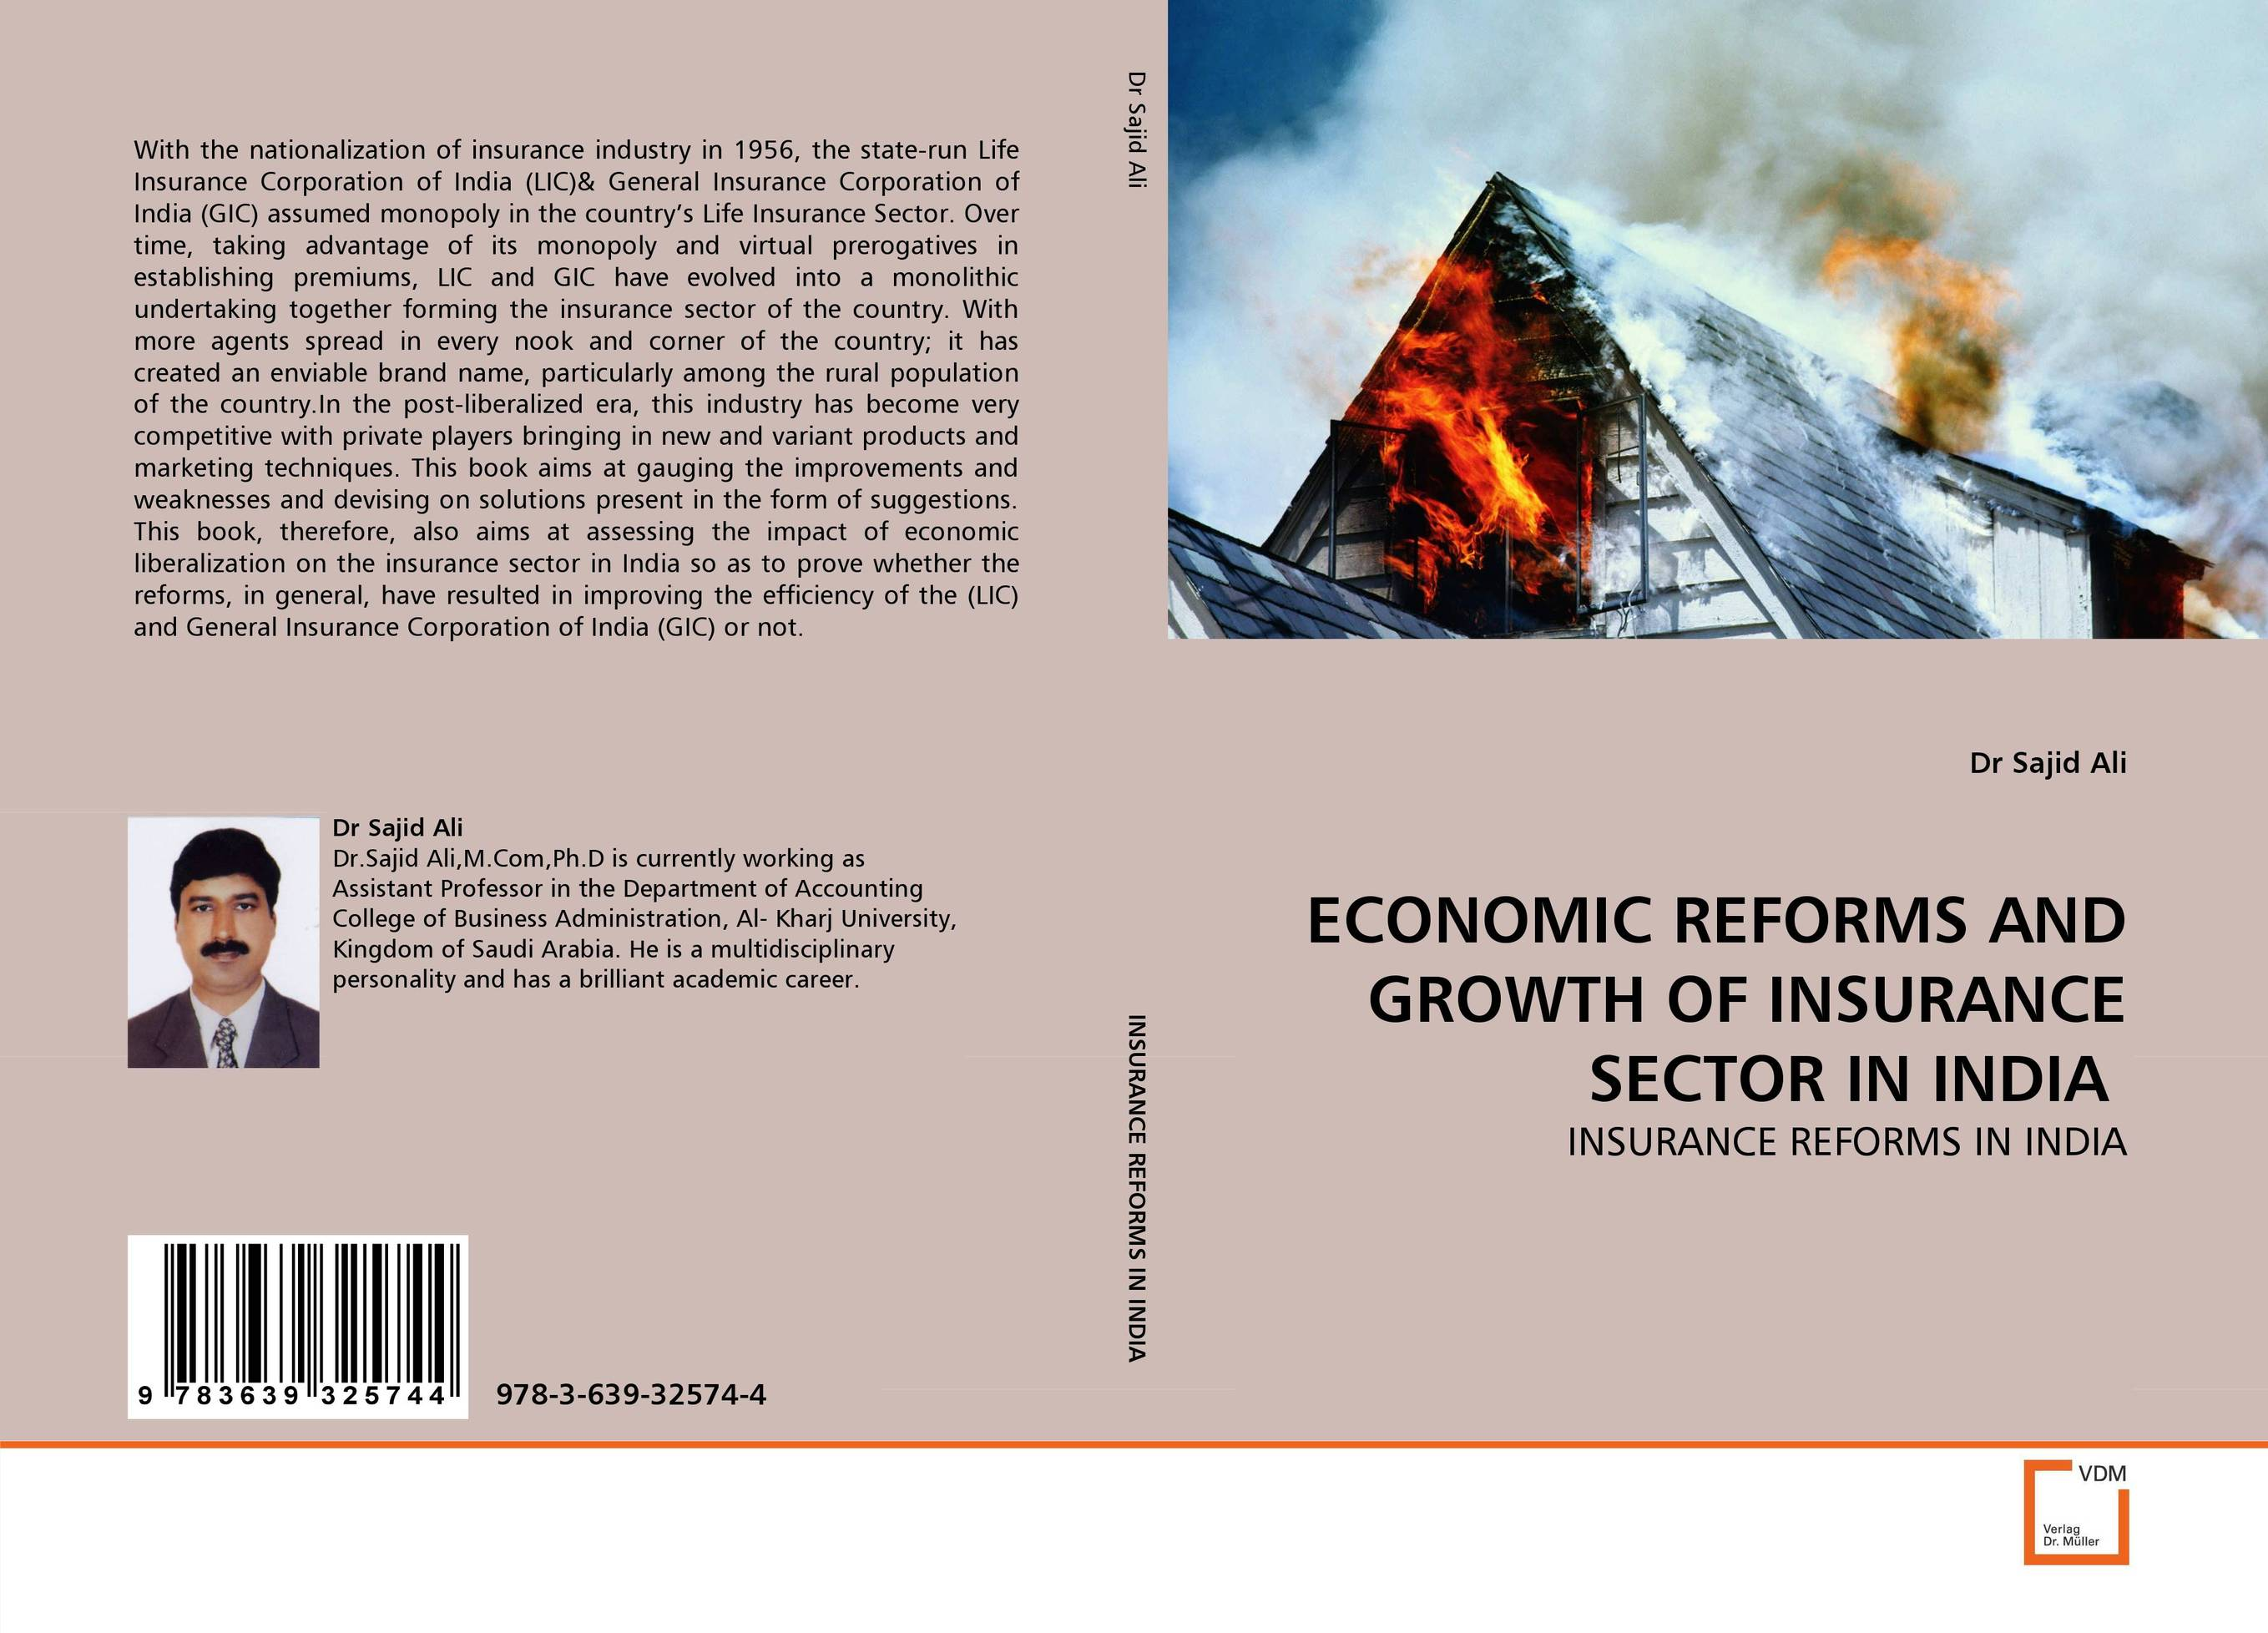 ECONOMIC REFORMS AND GROWTH OF INSURANCE SECTOR IN INDIA ? halo volume 2 escalation